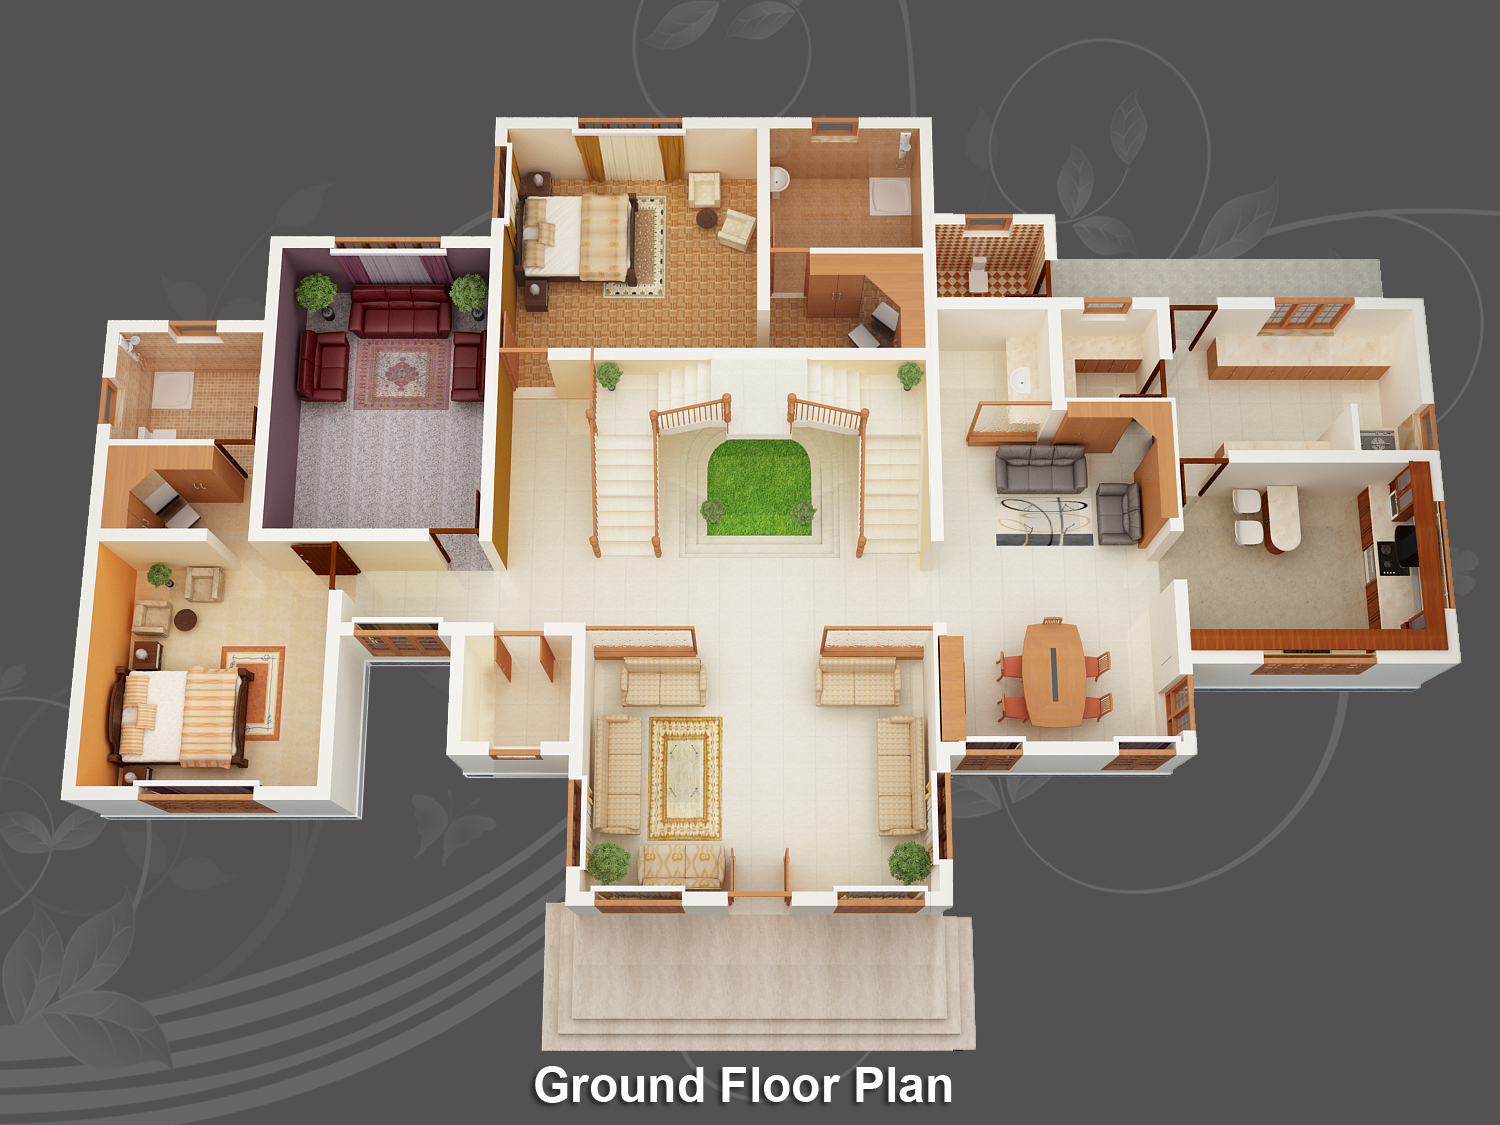 Evens construction pvt ltd 3d house plan 20 05 2011 for Home plans 3d designs